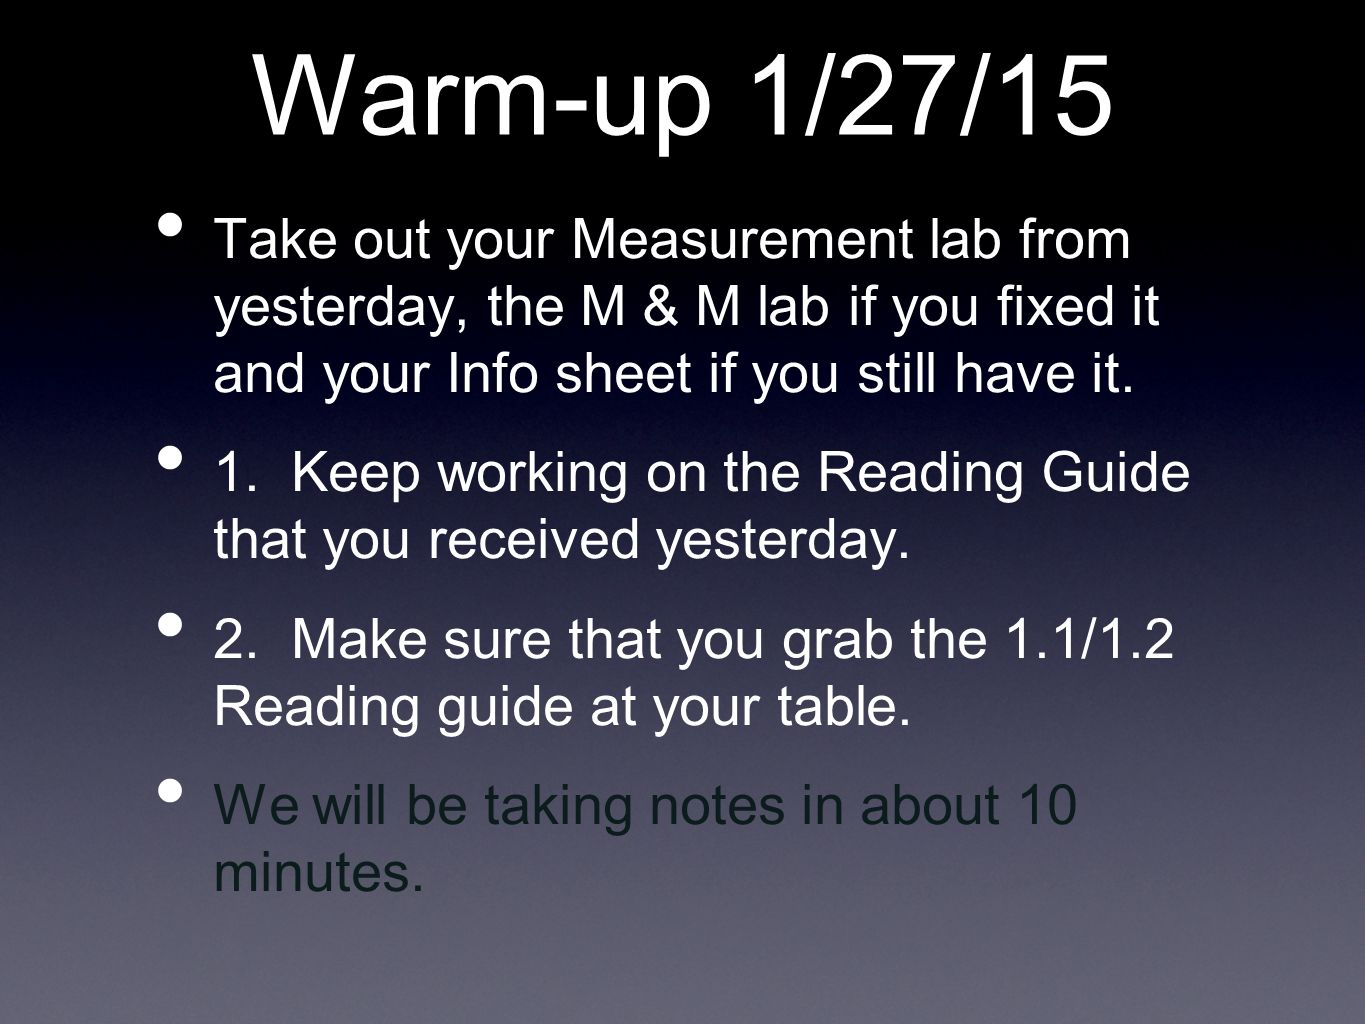 Warm-up 1/27/15 Take out your Measurement lab from yesterday, the M & M lab if you fixed it and your Info sheet if you still have it.